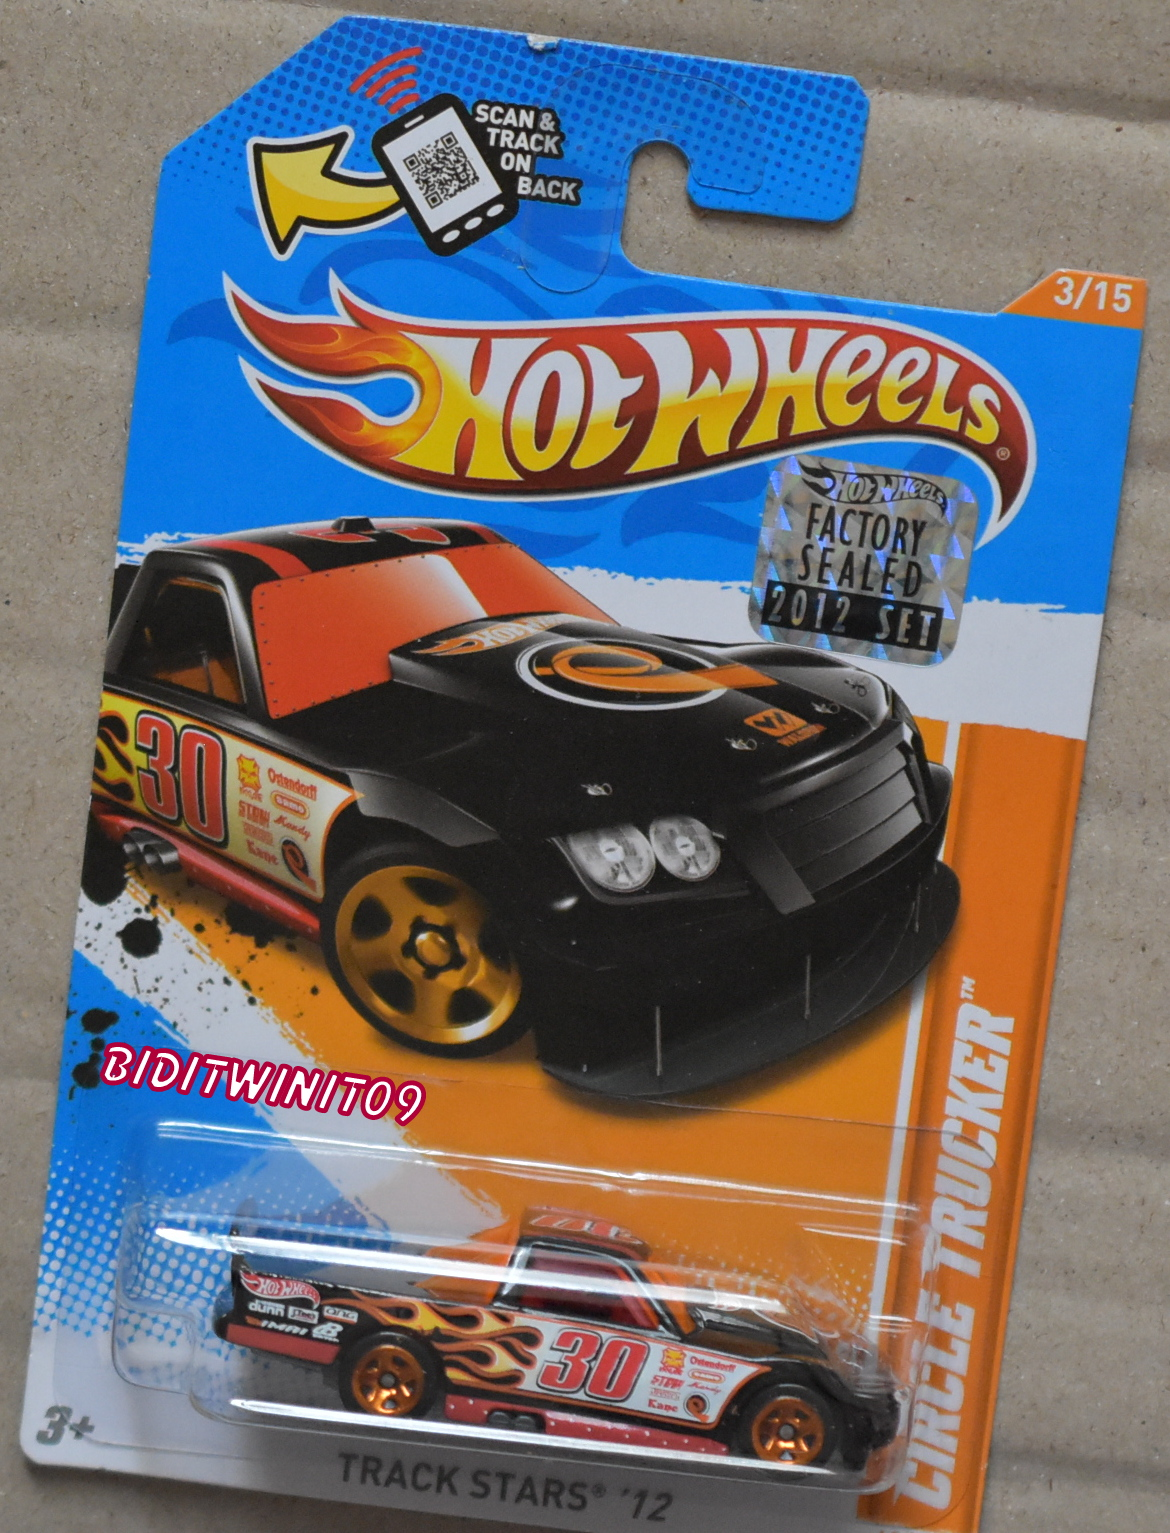 HOT WHEELS 2012 TRACK STARS CIRCLE TRUCKER BLACK FACTORY SEALED